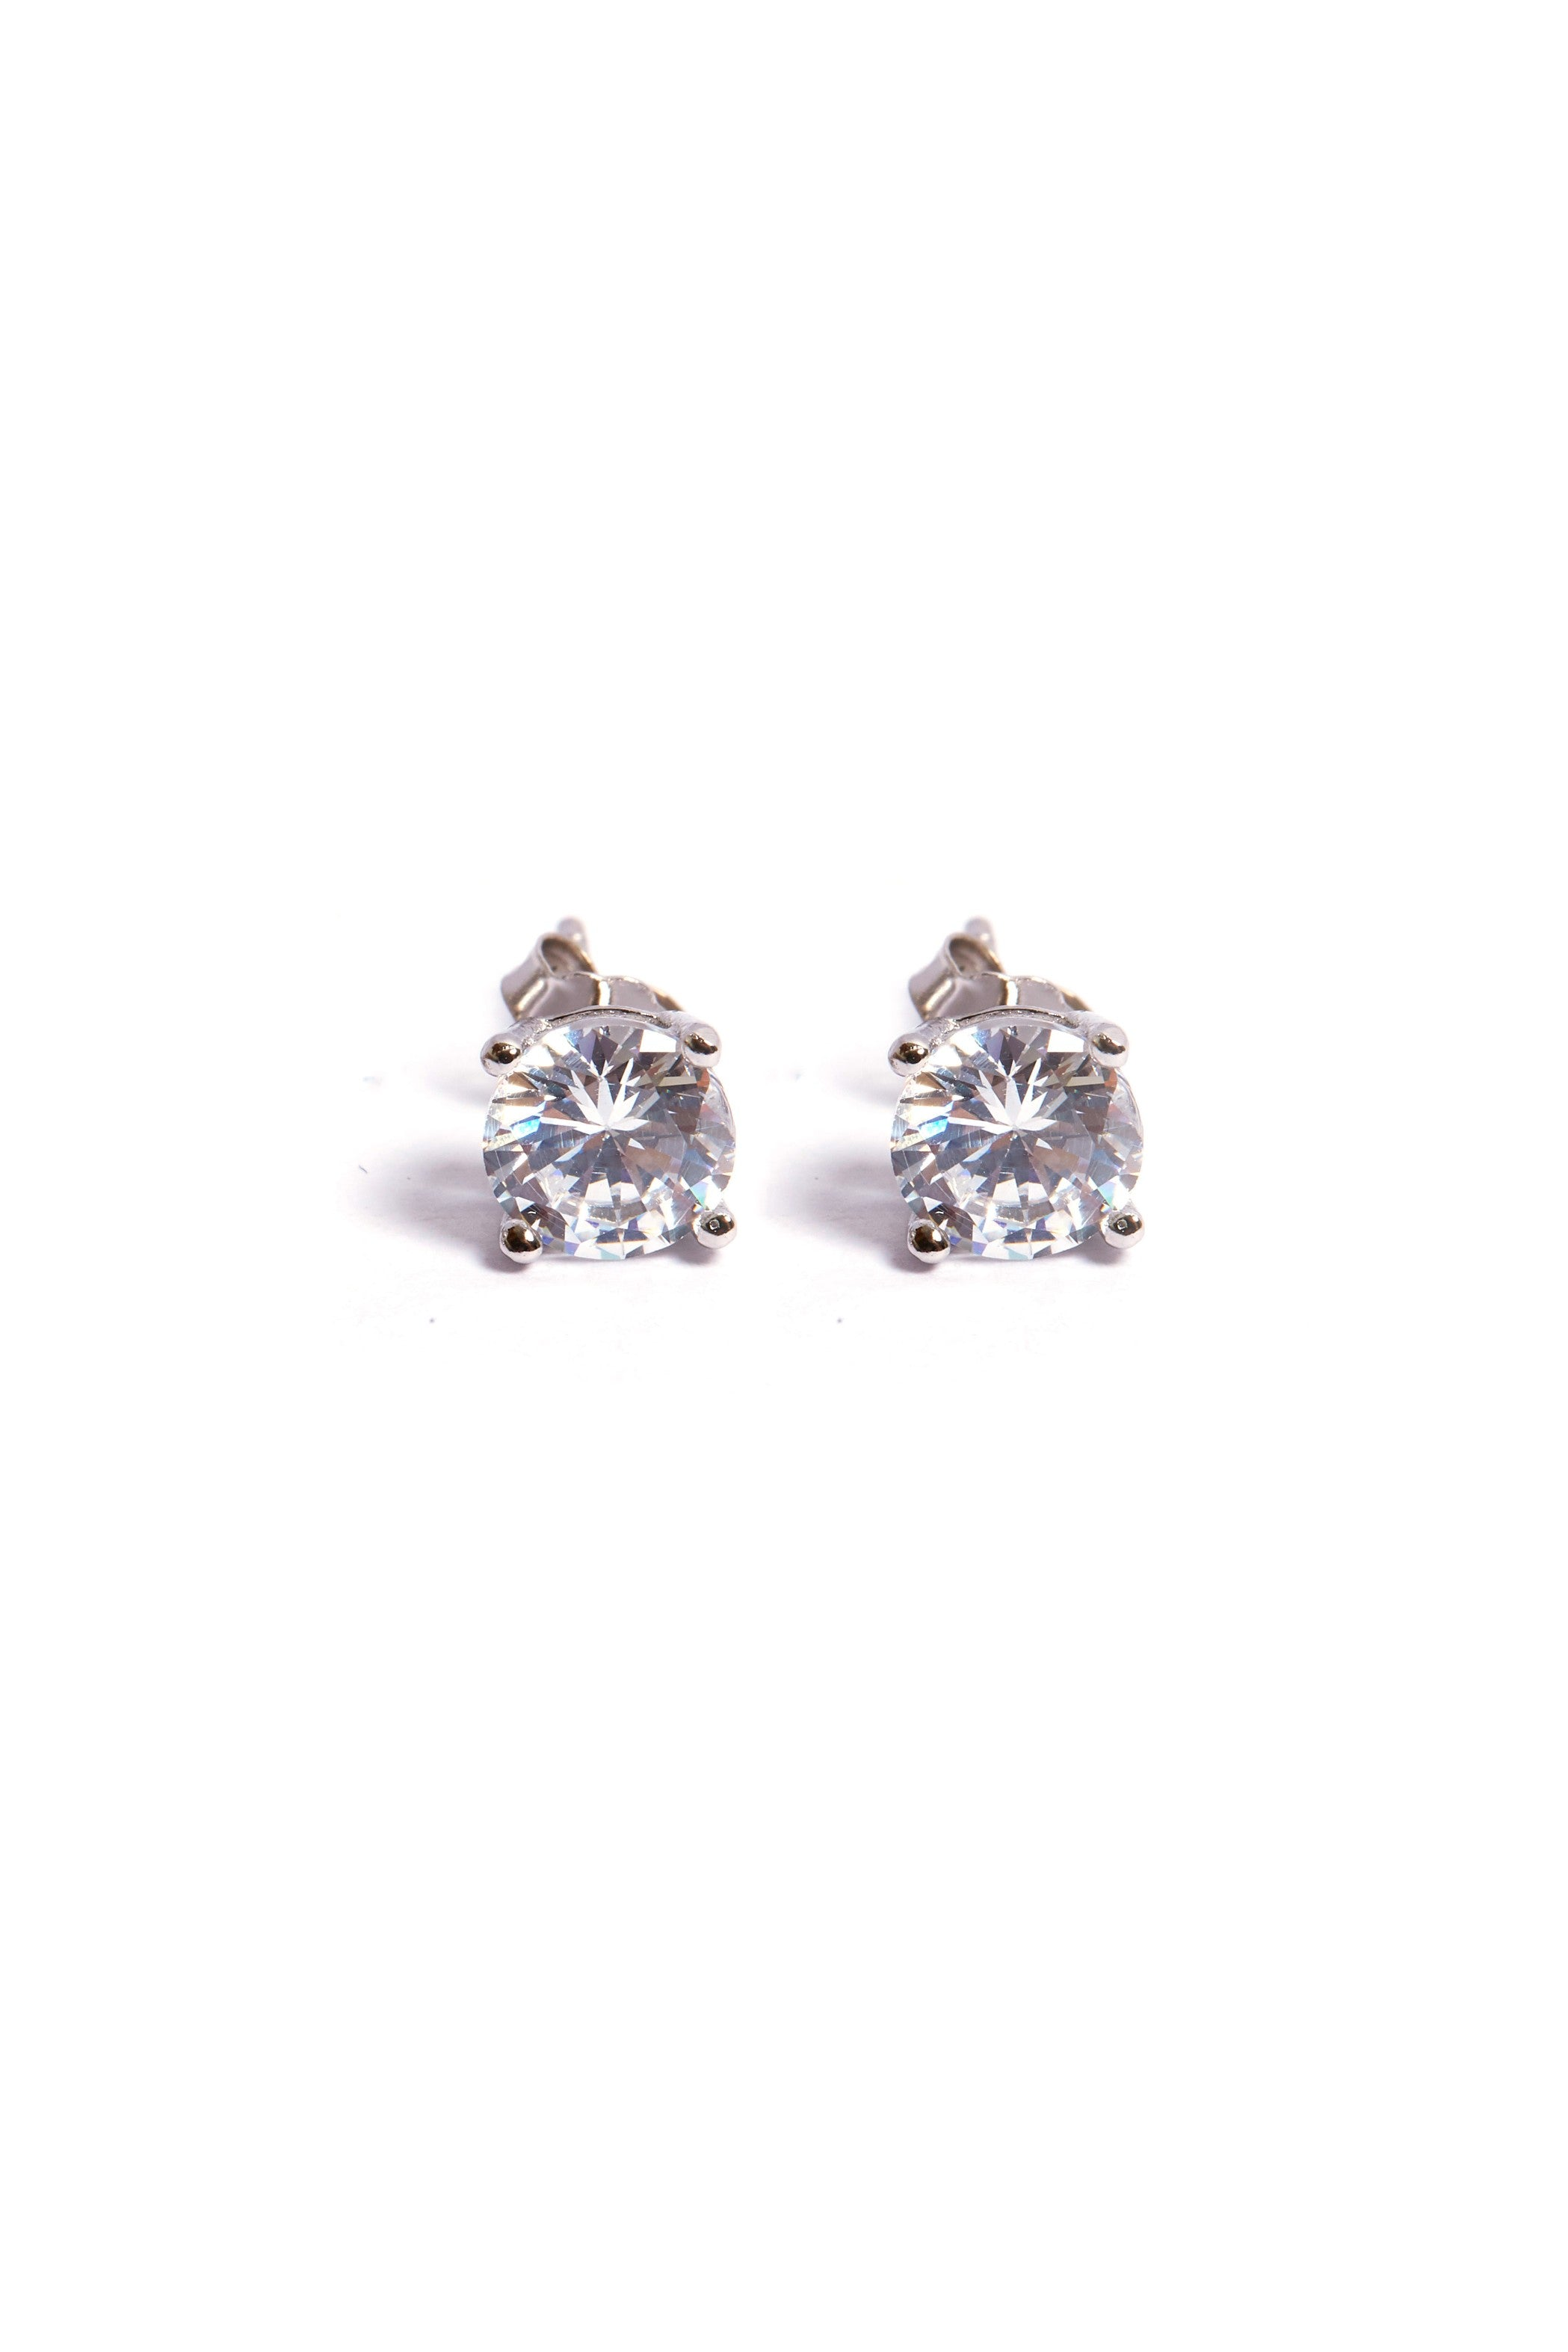 RHYS SILVER EARRINGS